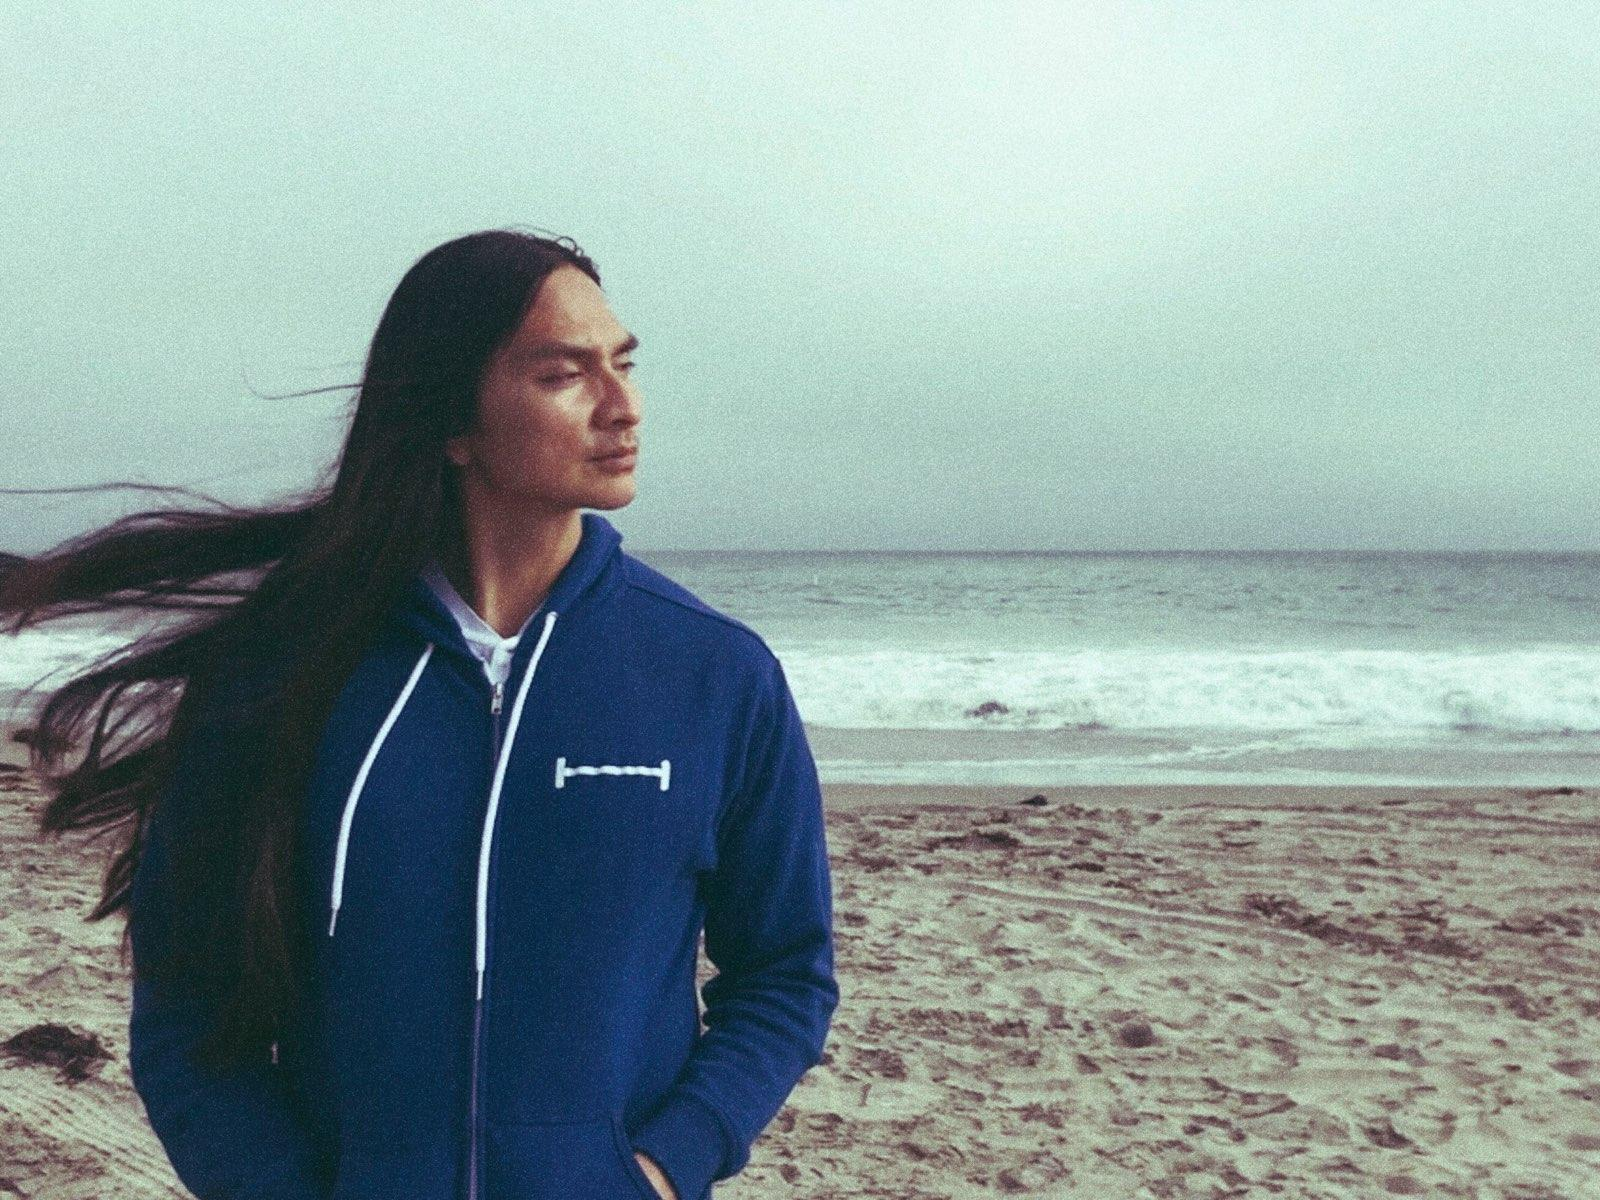 Hoodie for windy beach days